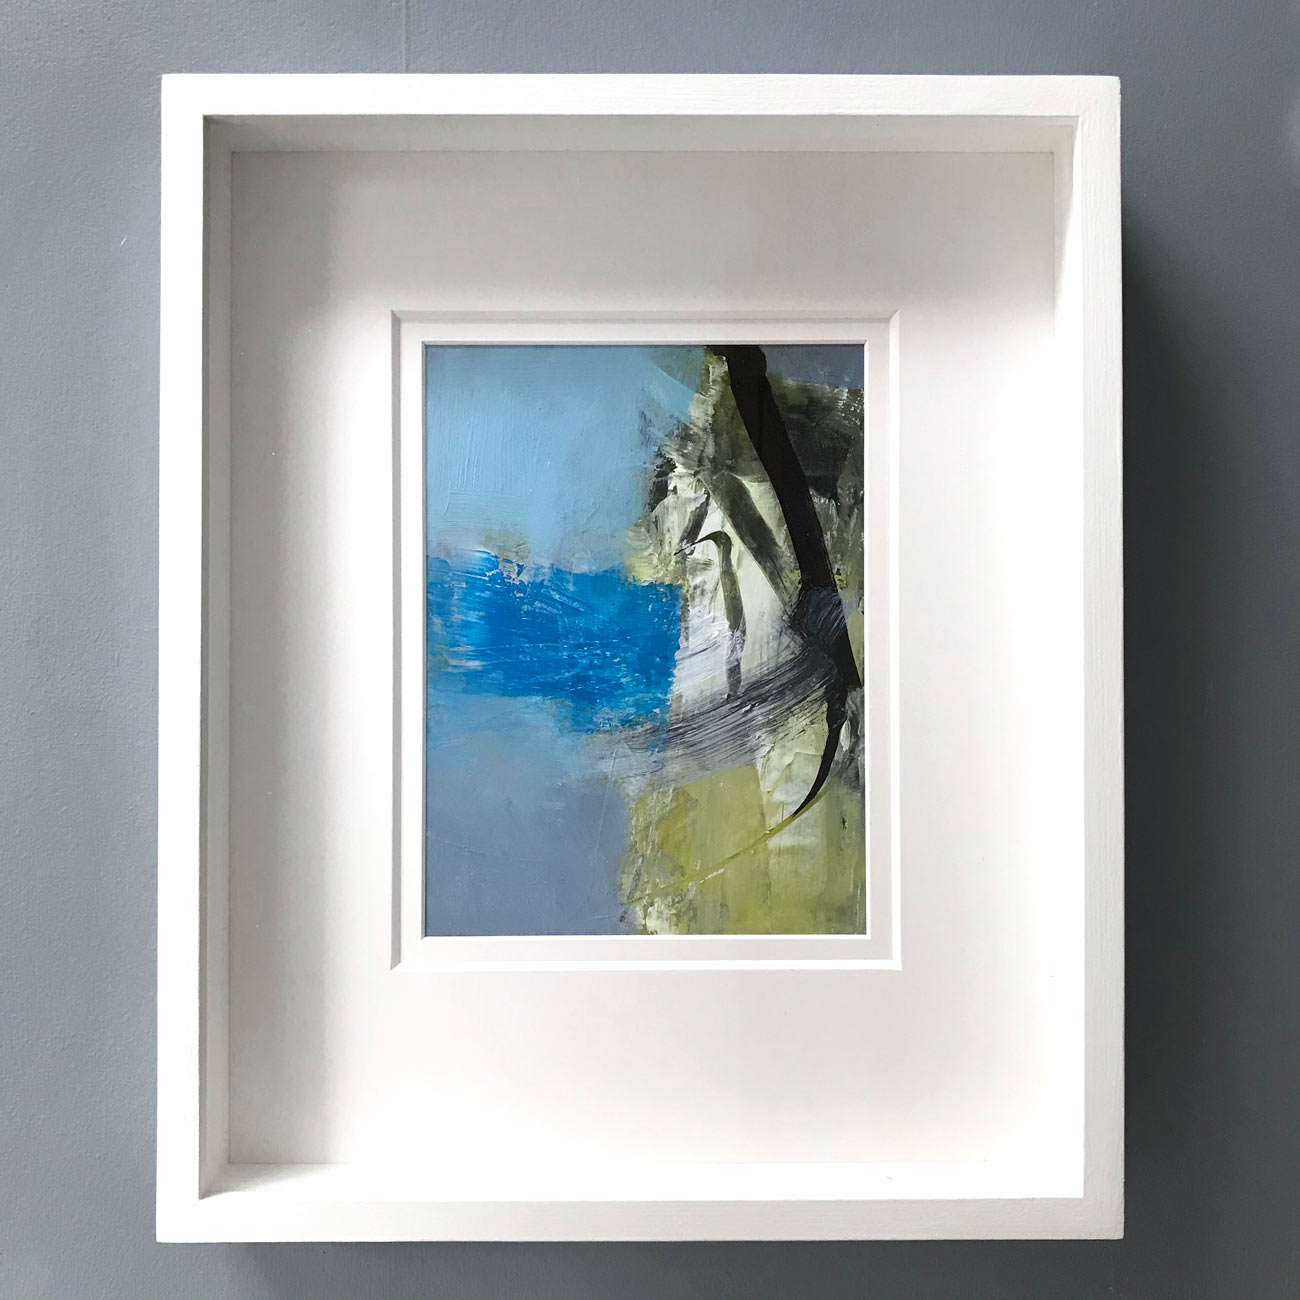 Slip Stream framed by Neil Canning. Studio Collection Winter 2020